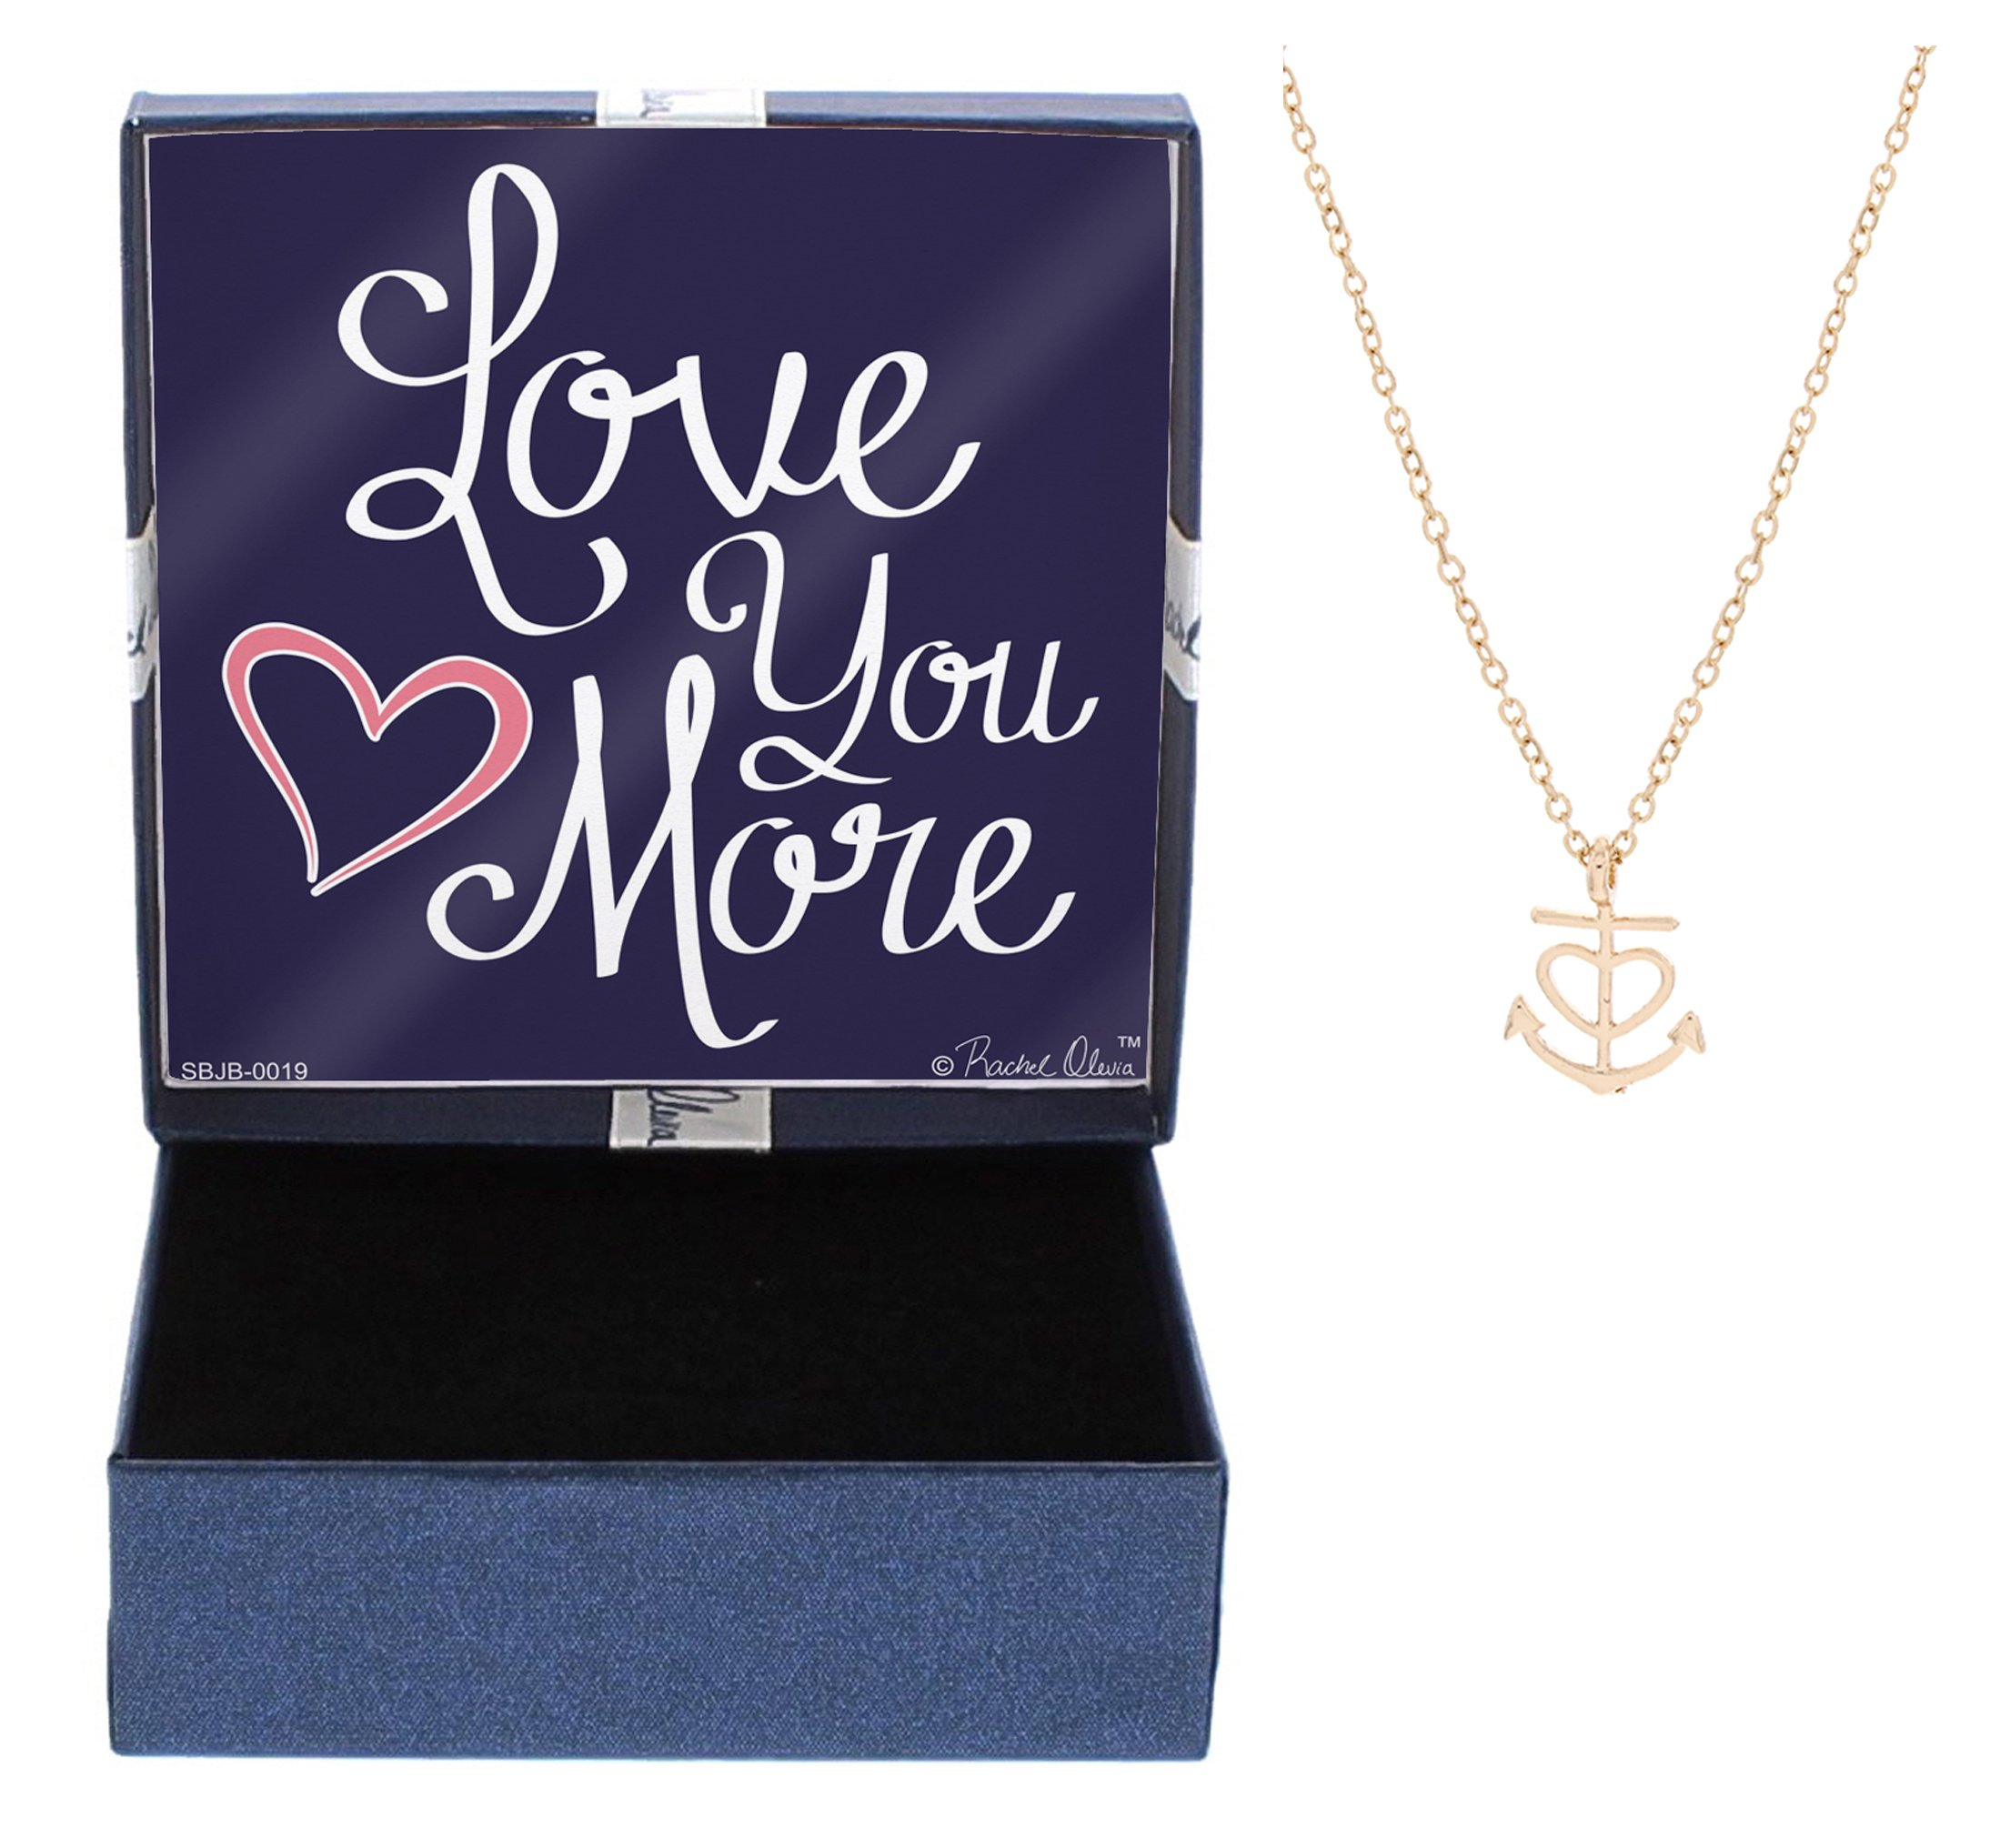 Nautical Jewelry Love You More Heart Anchor Necklace Fashion Rose Gold-Tone Link Chain Necklace Jewelry Box Keepsake Gift Boating Girlfriend